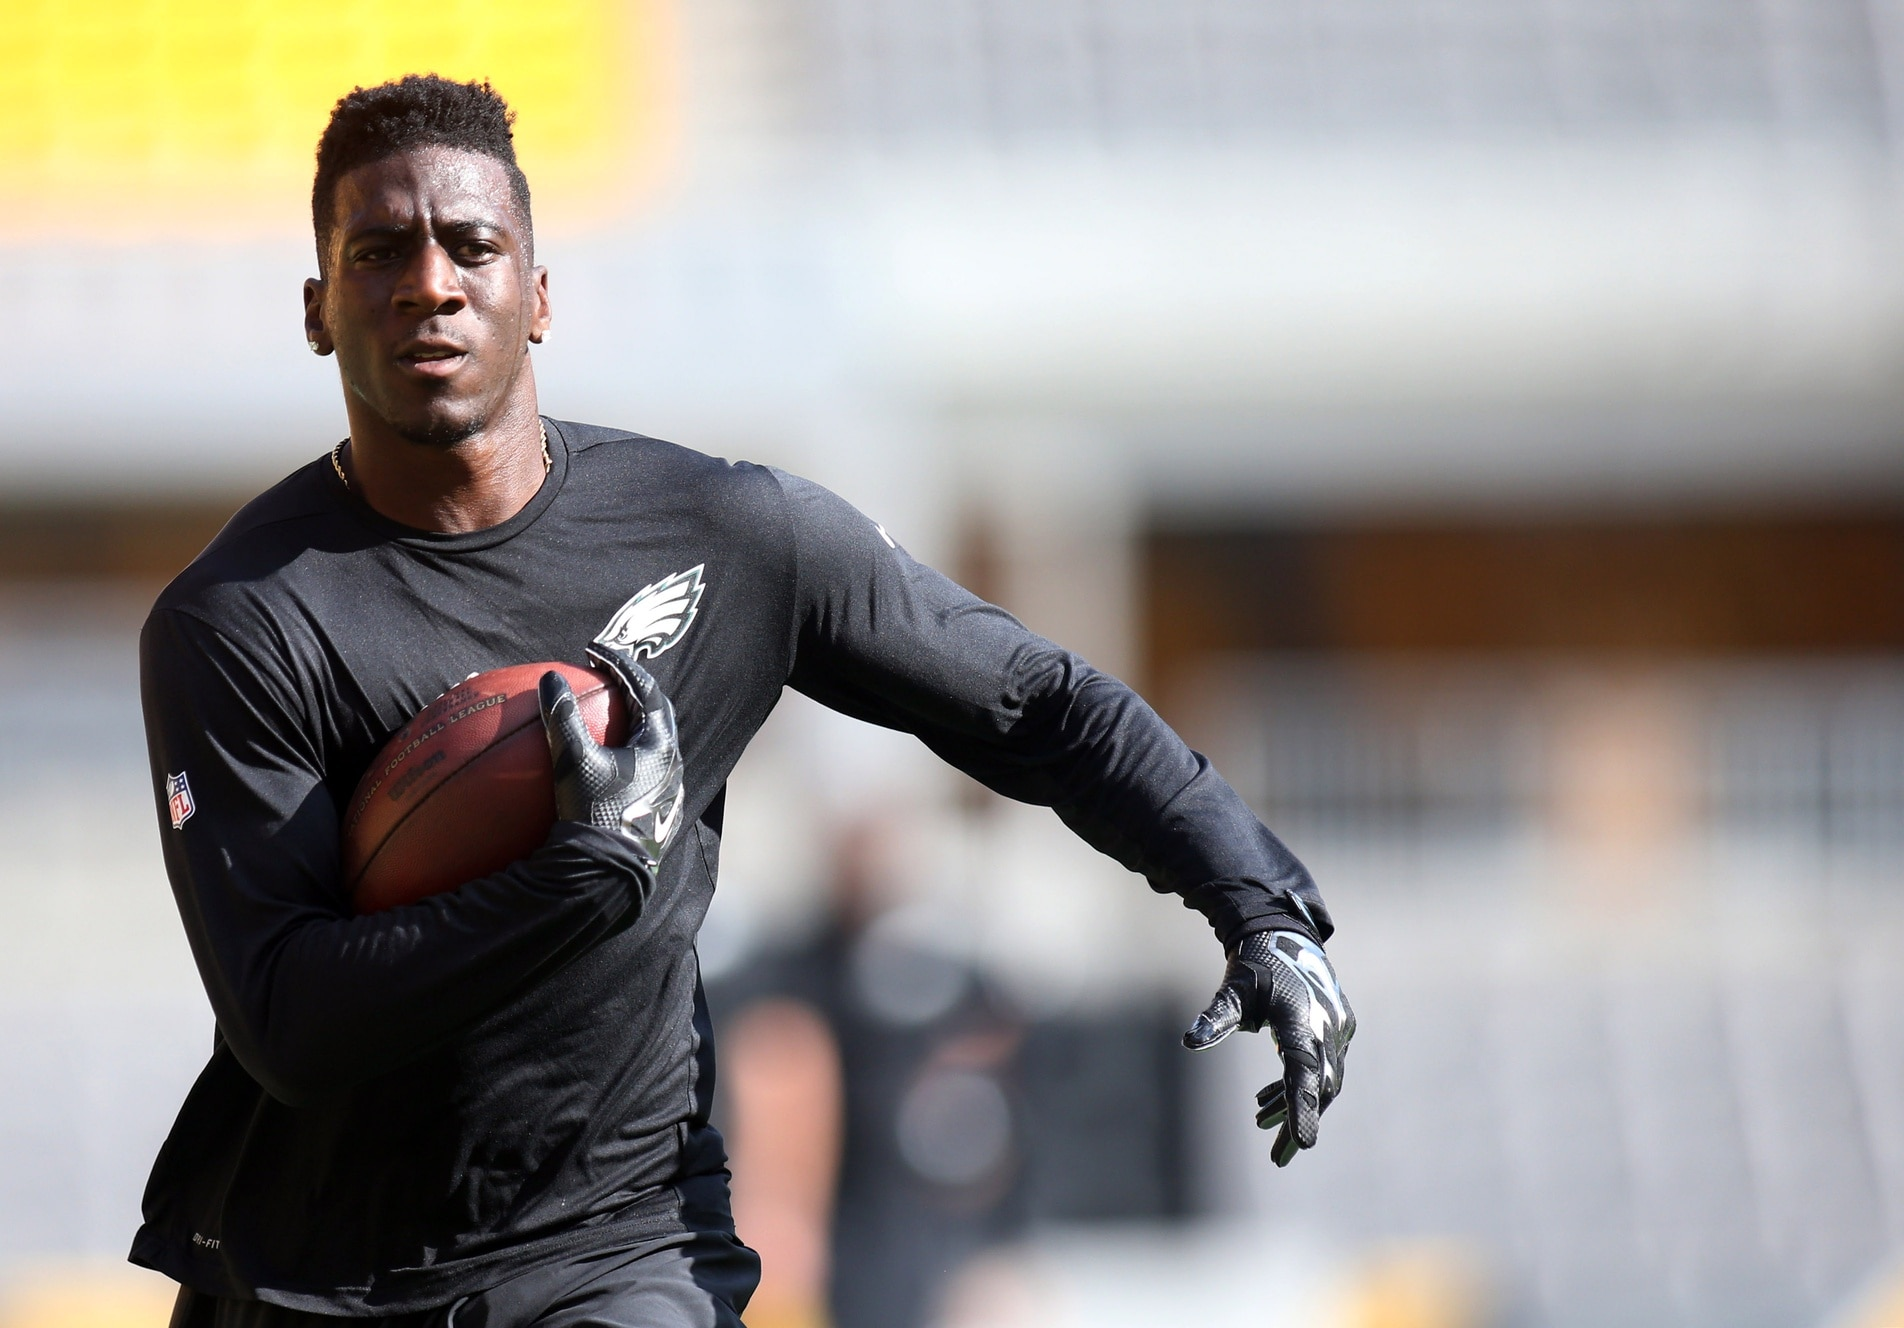 Dorial Green-Beckham fined $6K for 'Yeezy Foundation' cleats